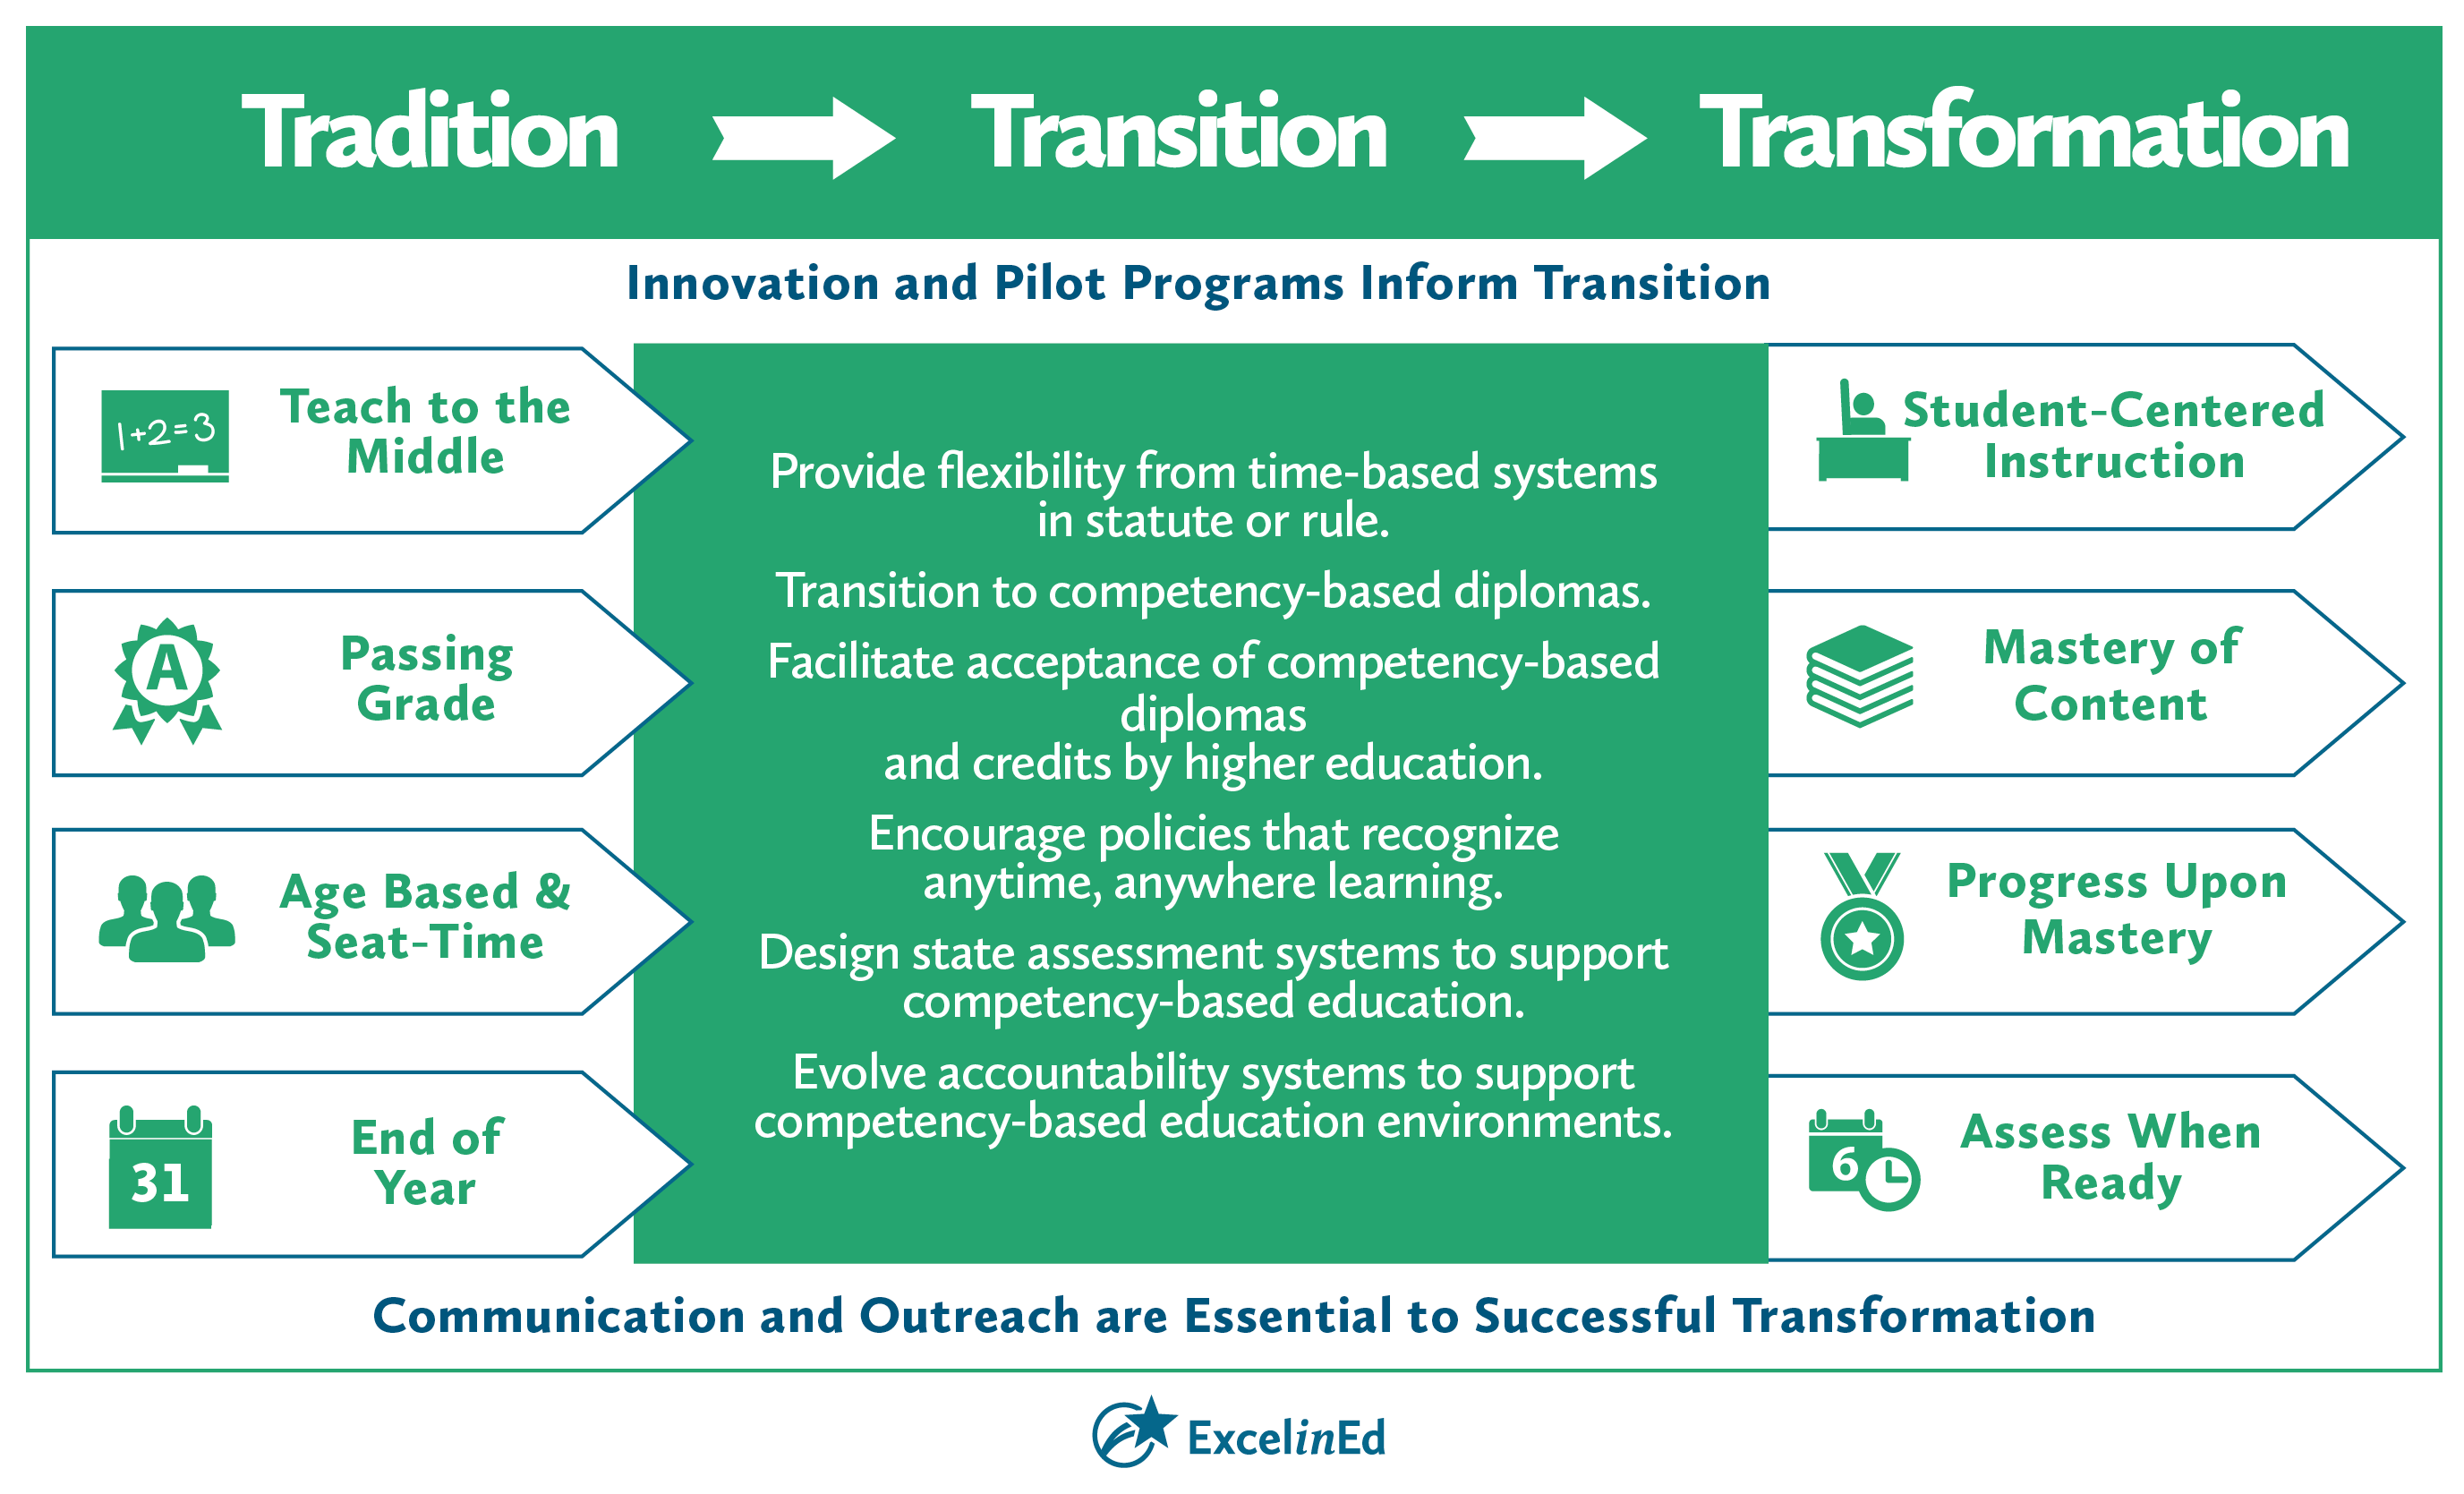 Transition to Competency-Based Education